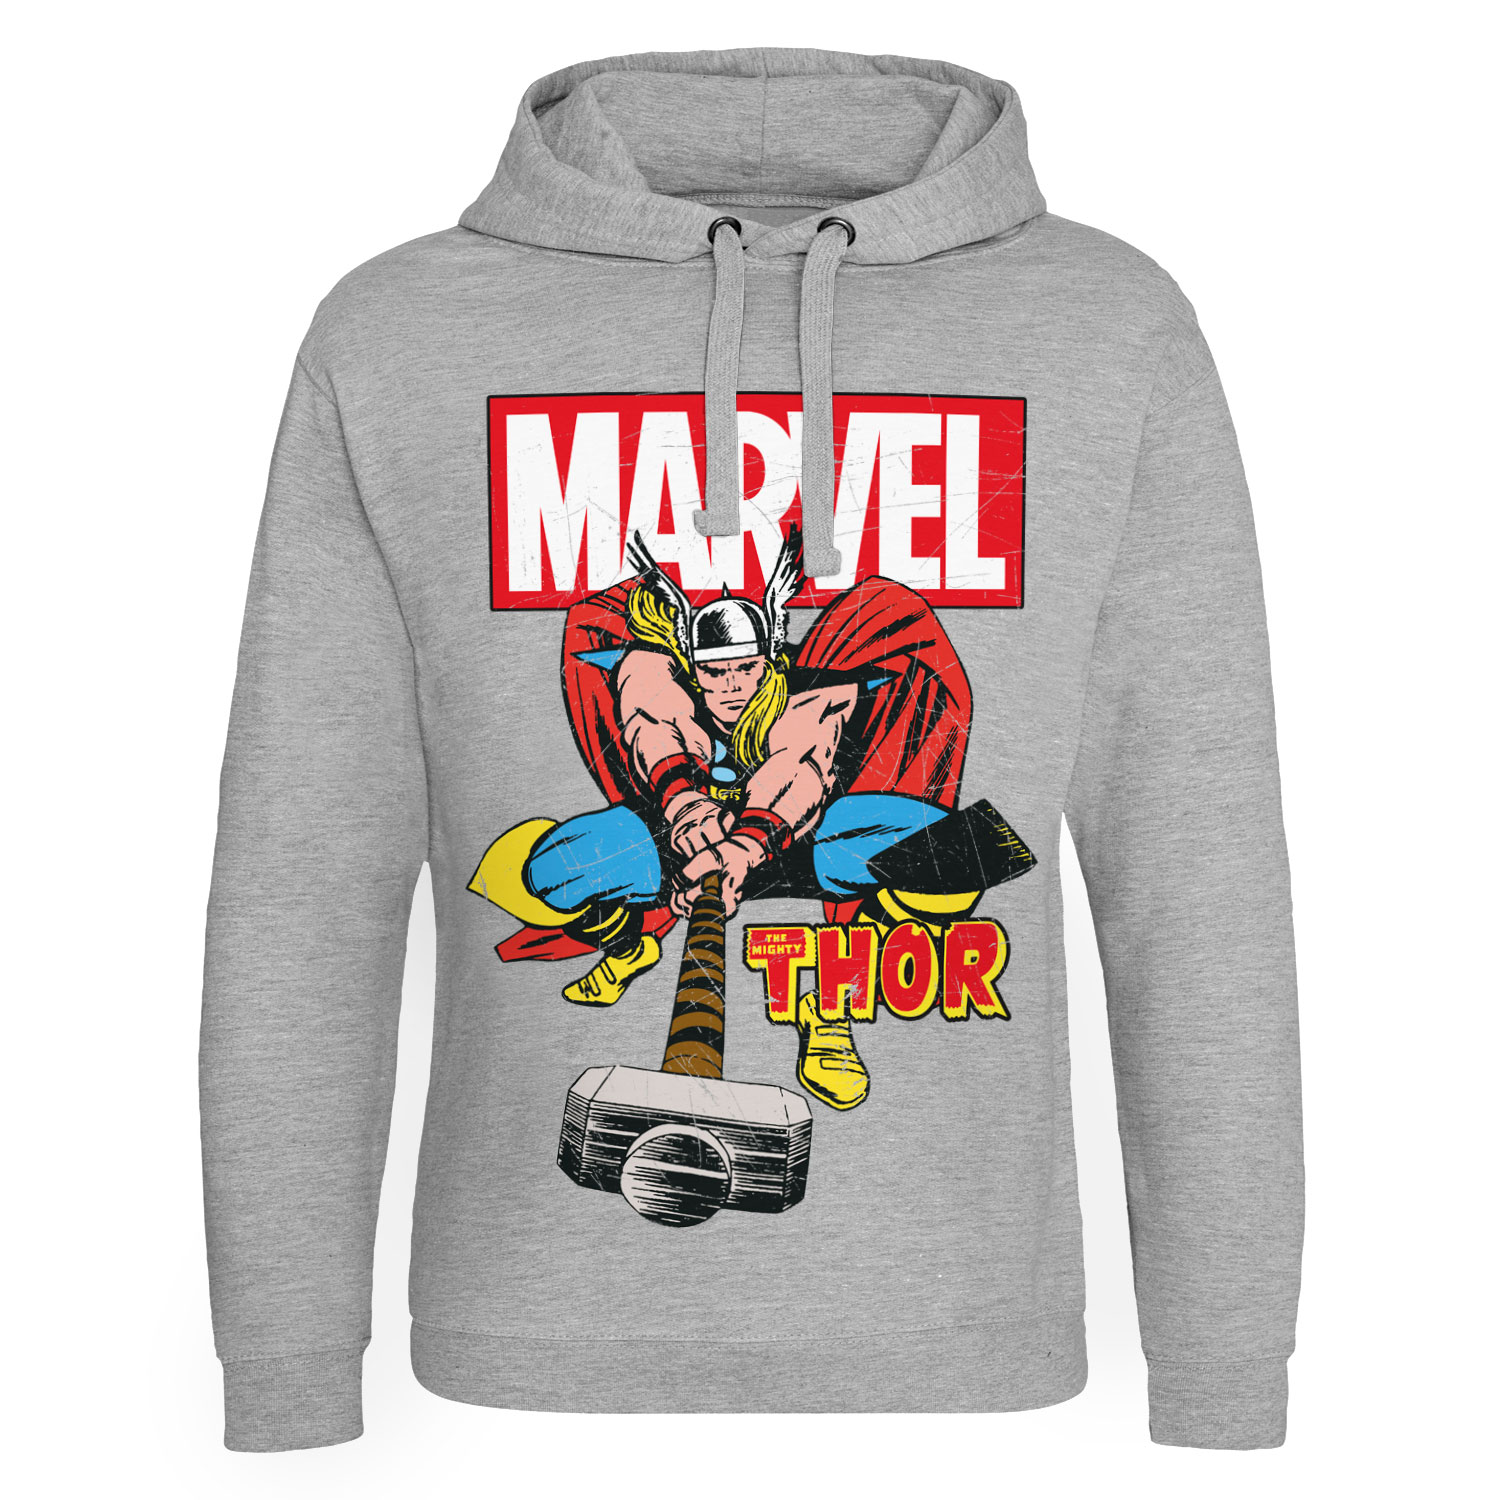 Marvel Comics - The Mighty Thor Epic Hoodie